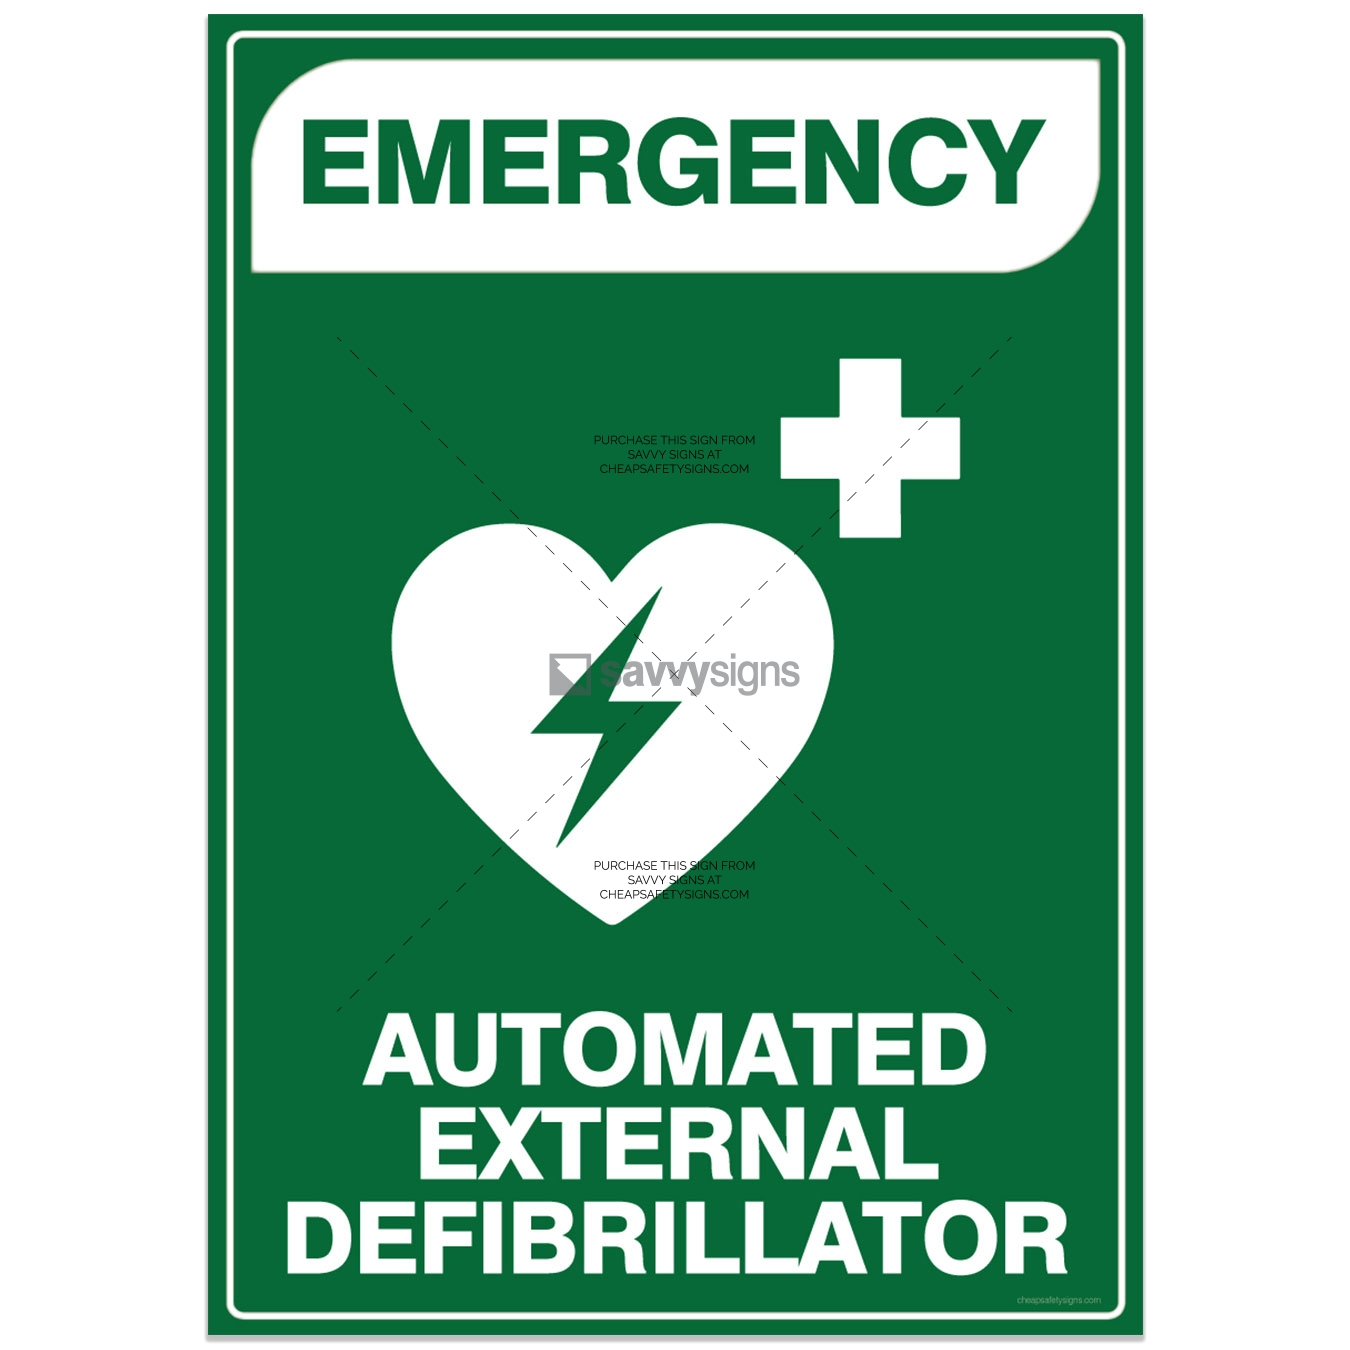 SSEME3040-EMERGENCY-Workplace-Safety-Signs_Savvy-Signs_v3